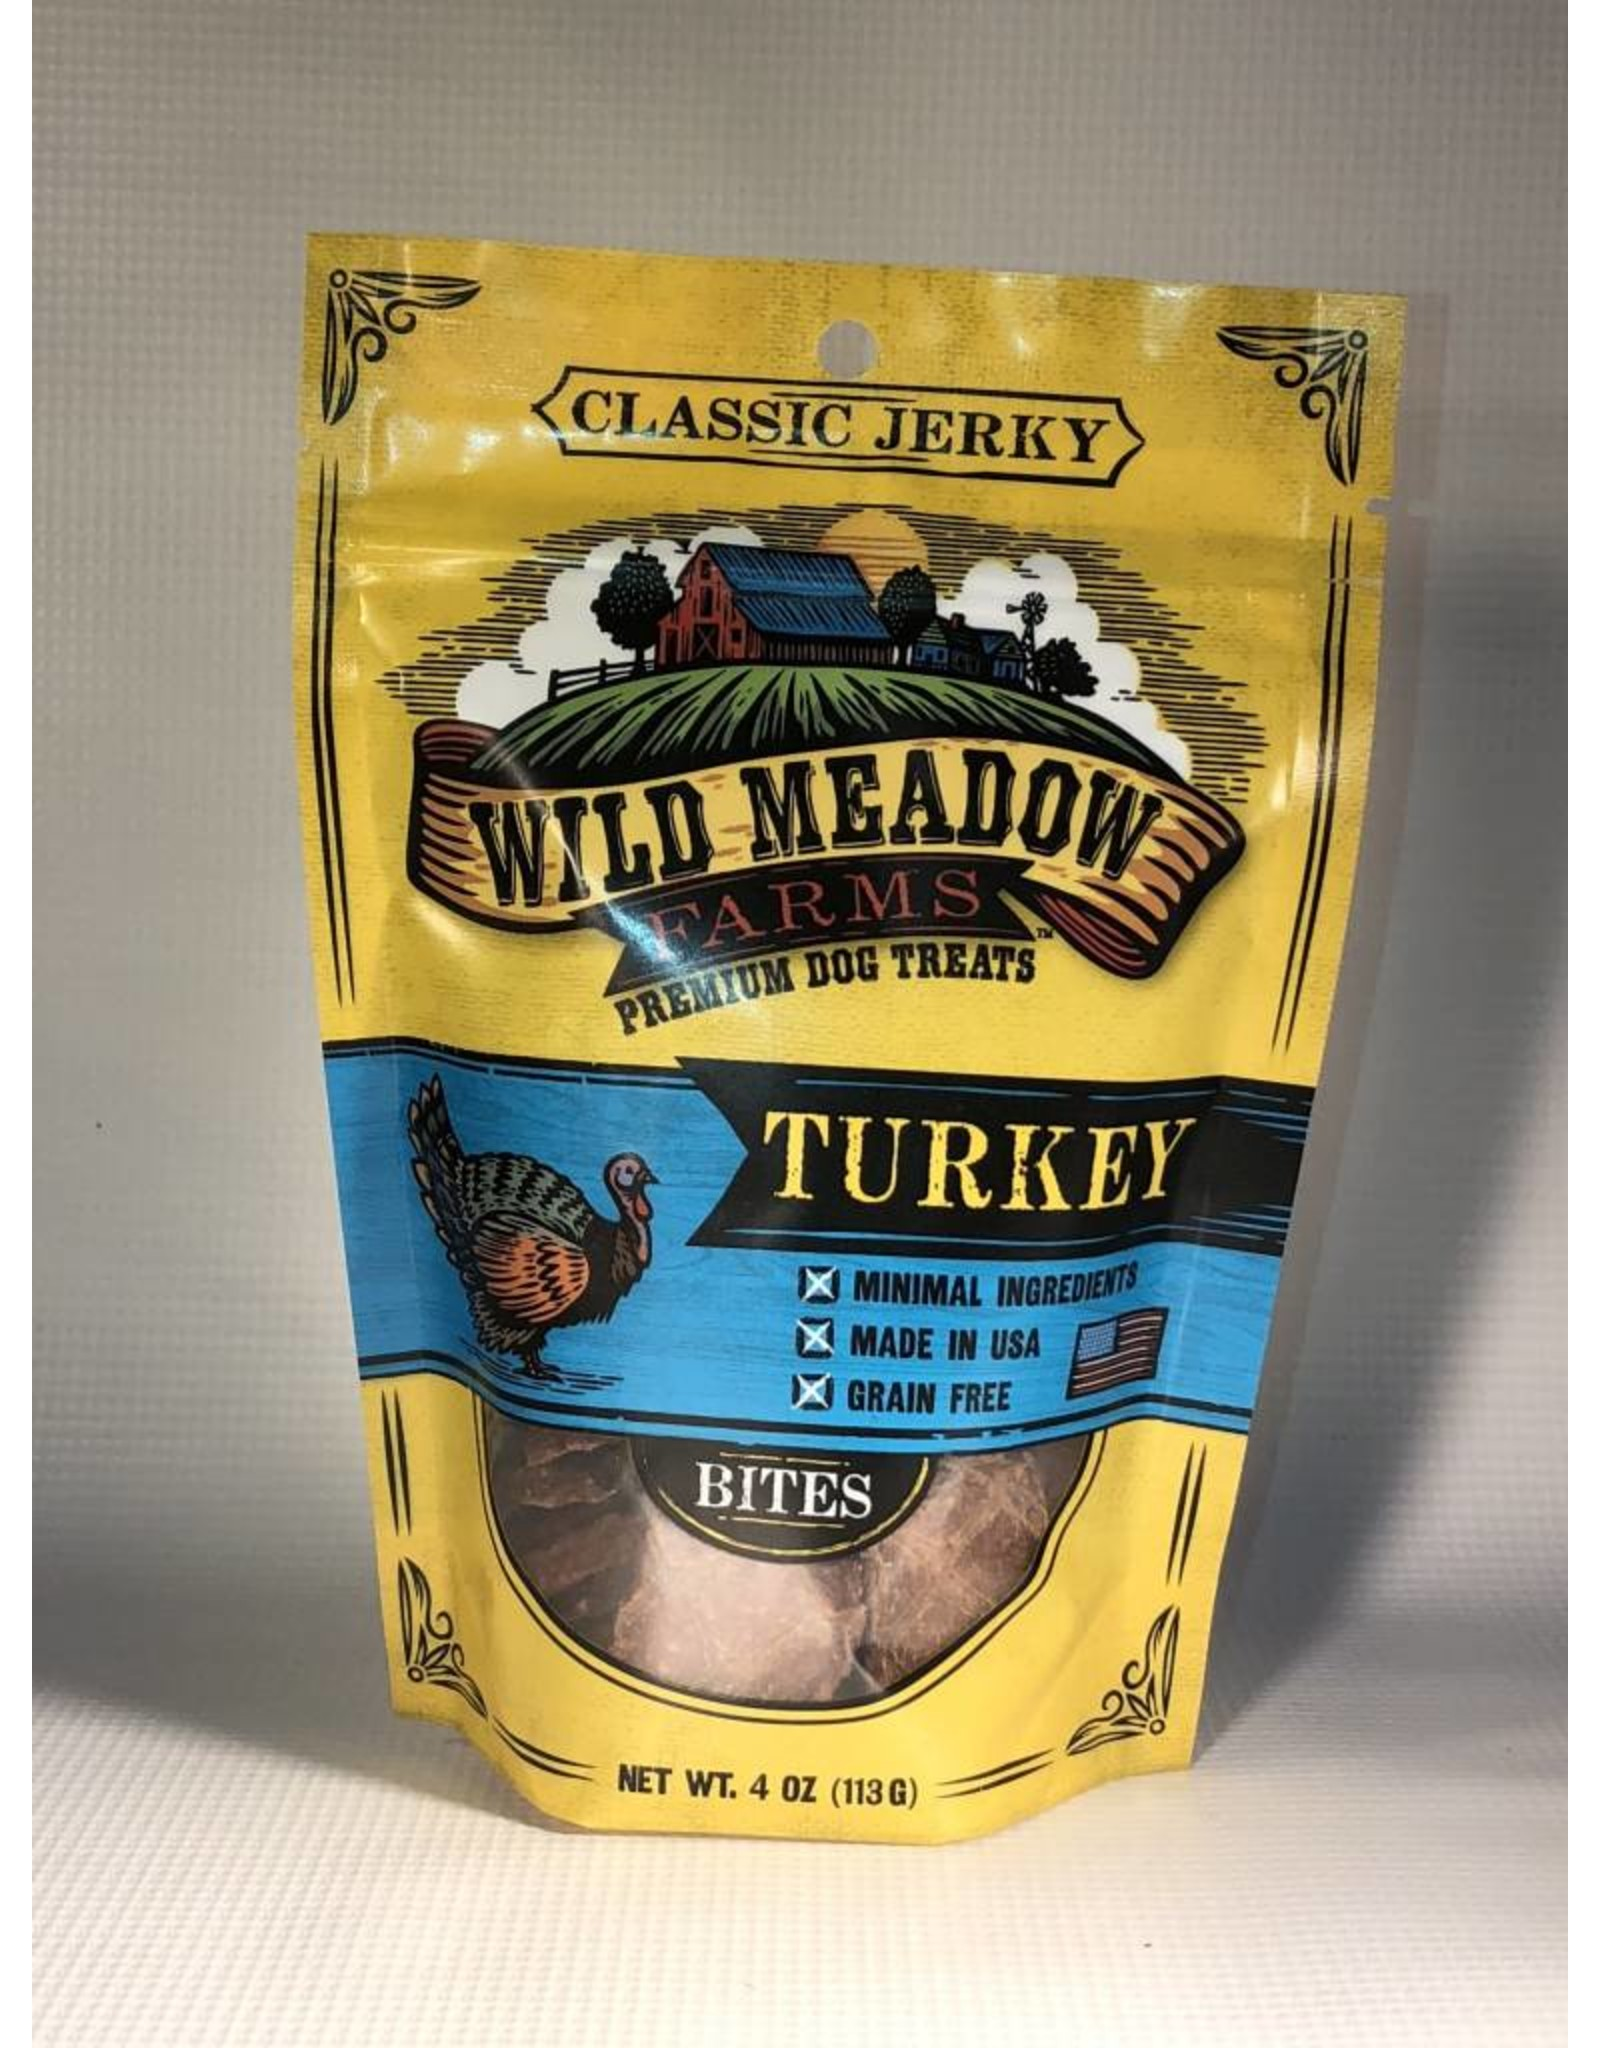 WILD MEADOWS WILD MEADOW FARMS TURKEY BITES 4OZ